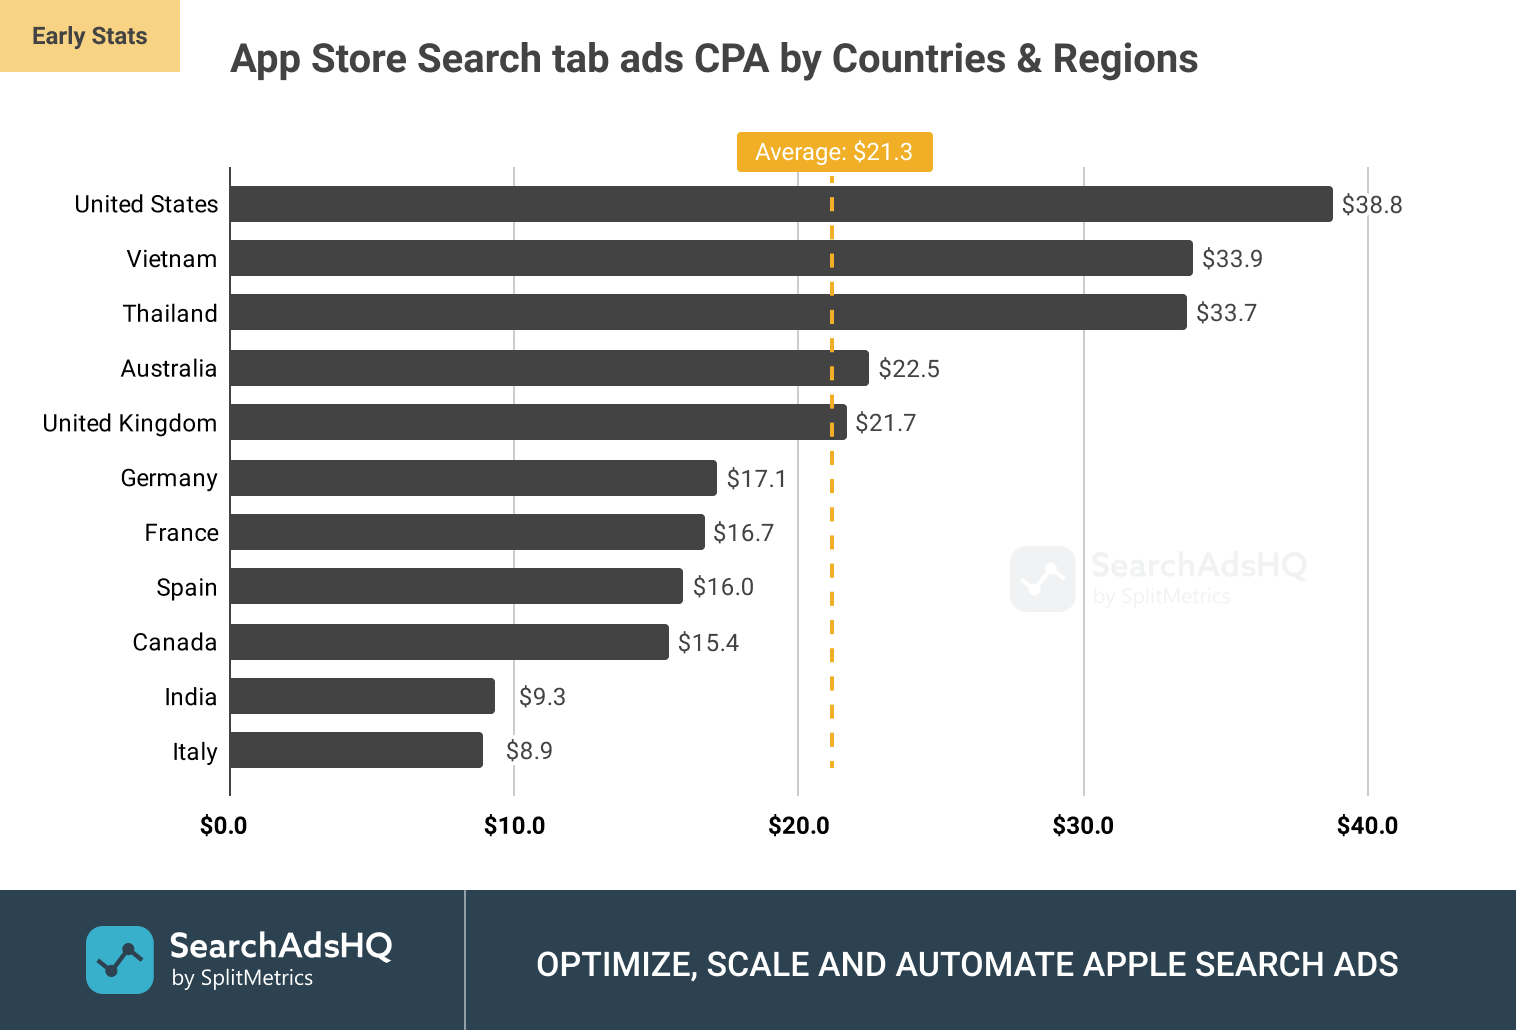 App Store Search tab ads: Average CPA (Cost per Acquisition) by Countries and Regions